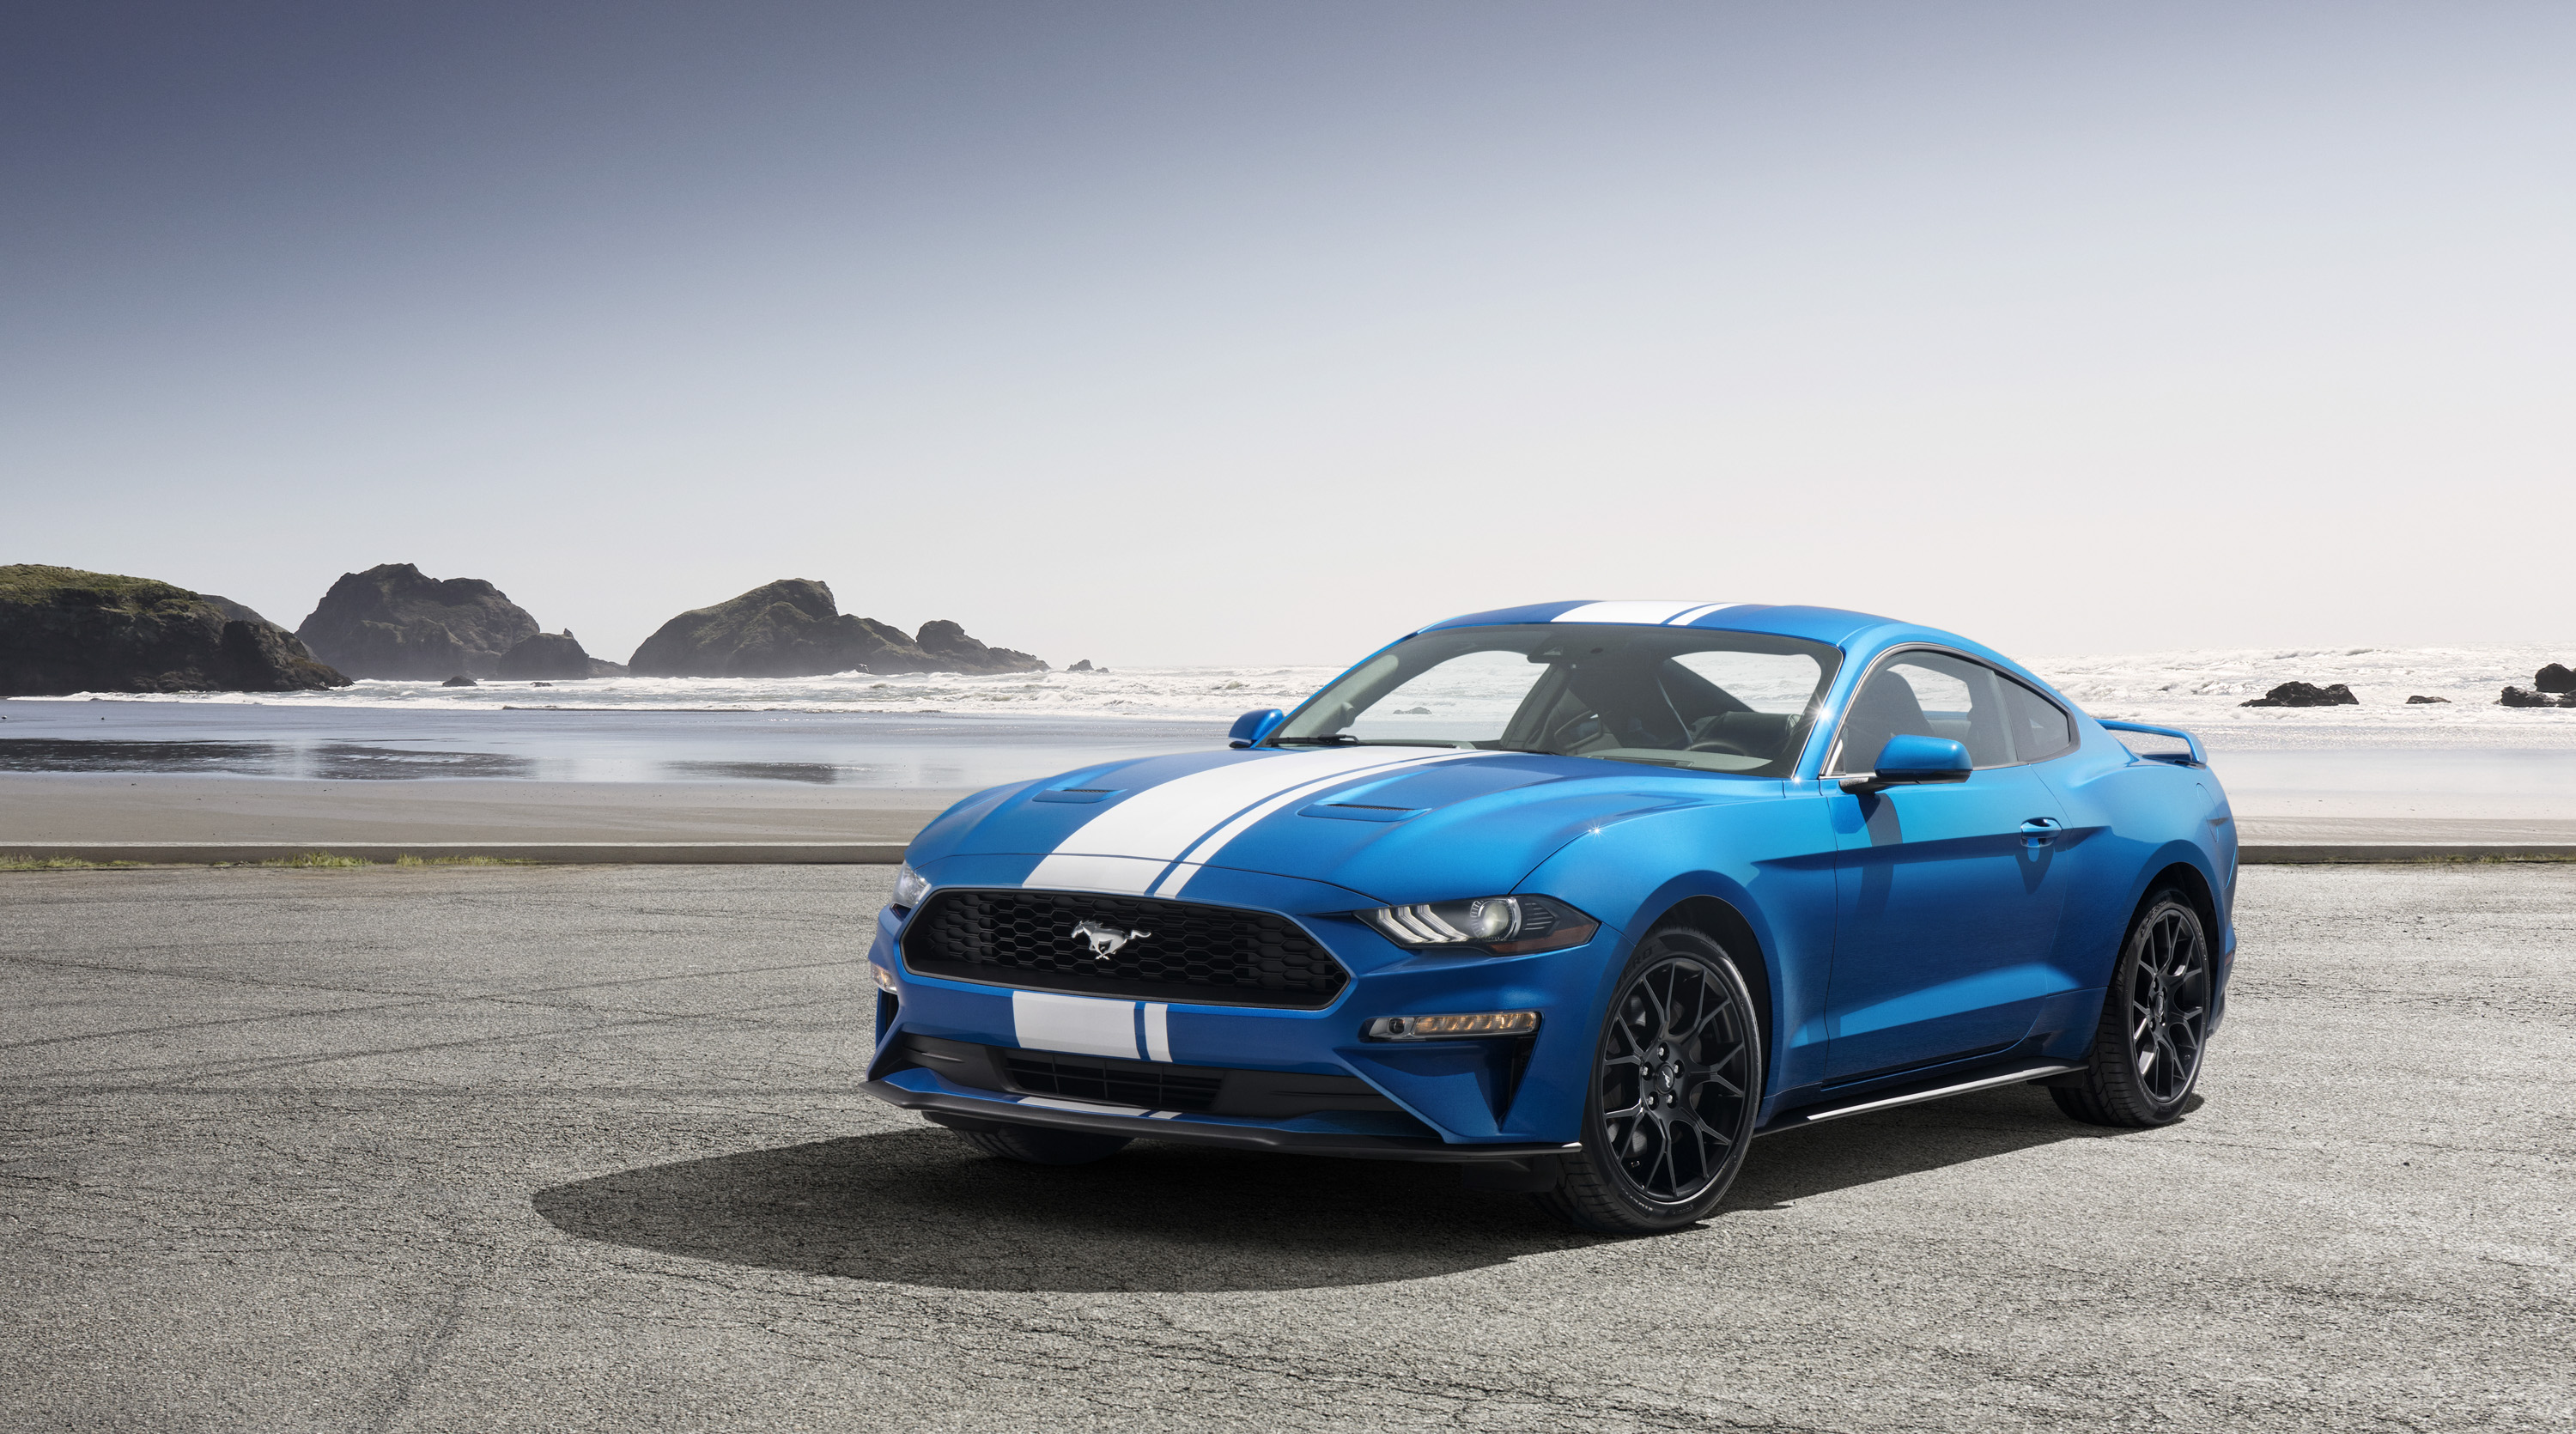 The ford mustang ecoboost sounds as mean as the shelby gt350 with the active exhaust system